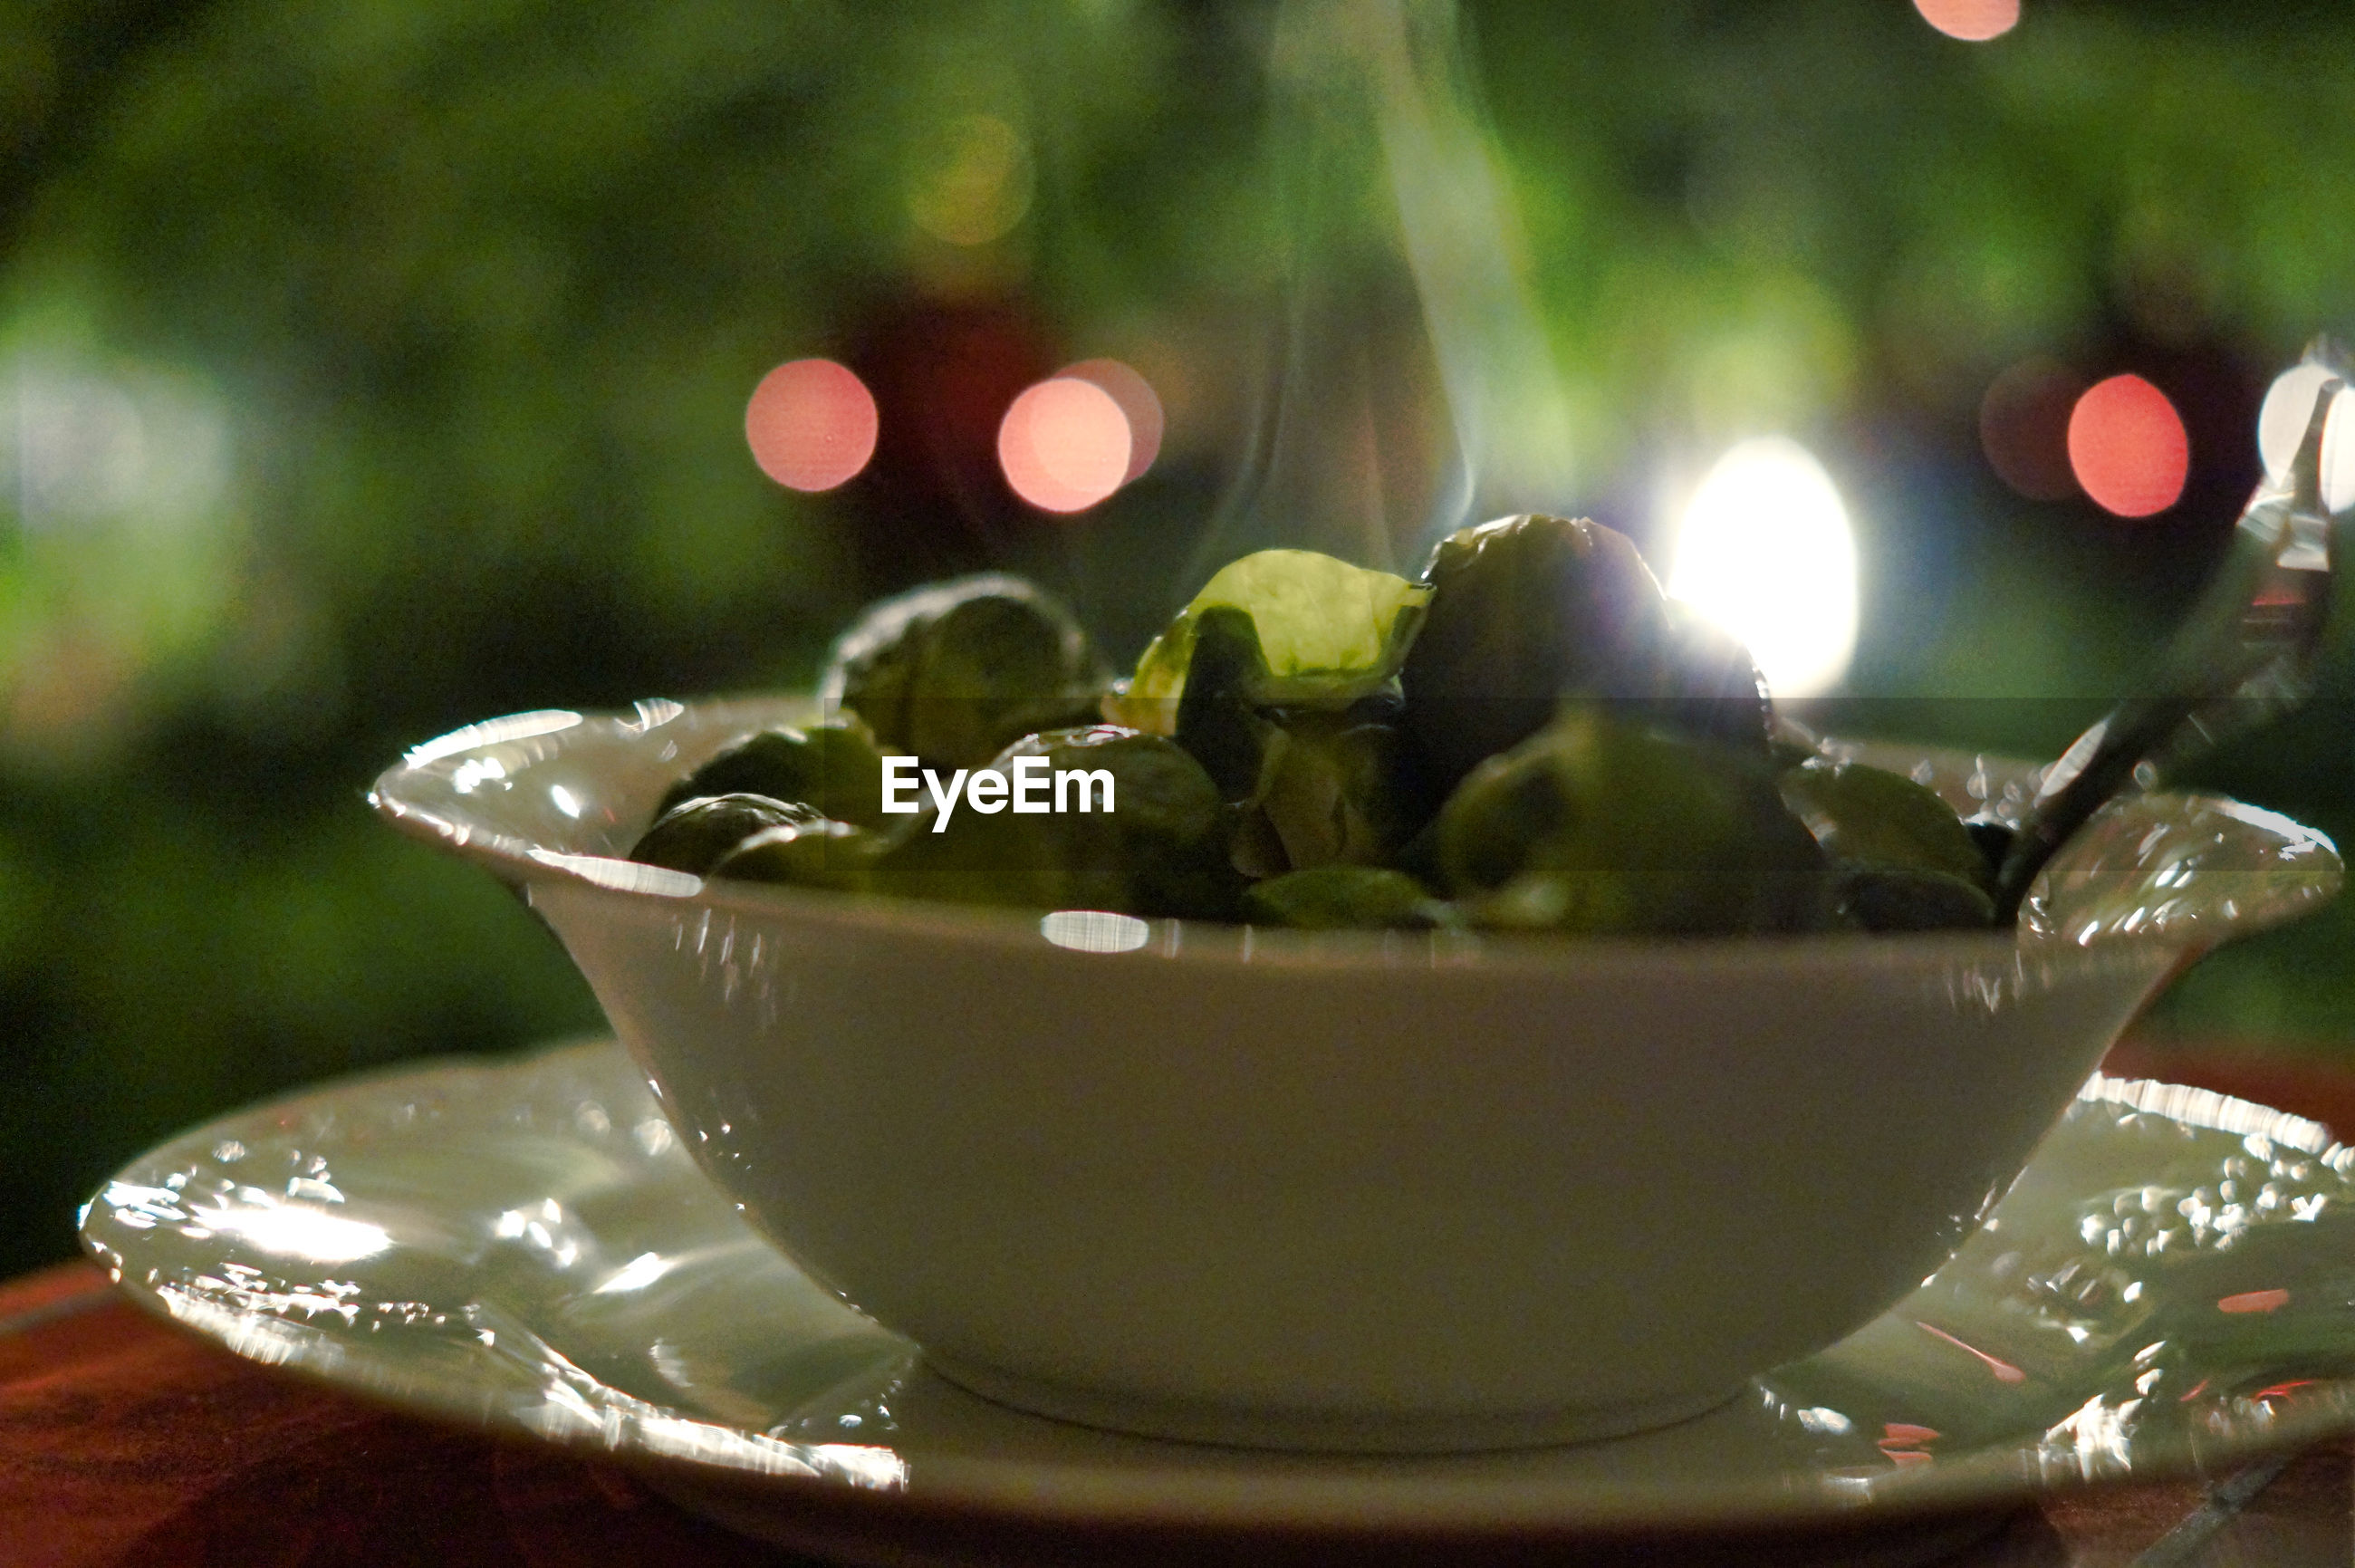 Close-up of brussels sprout in bowl on table